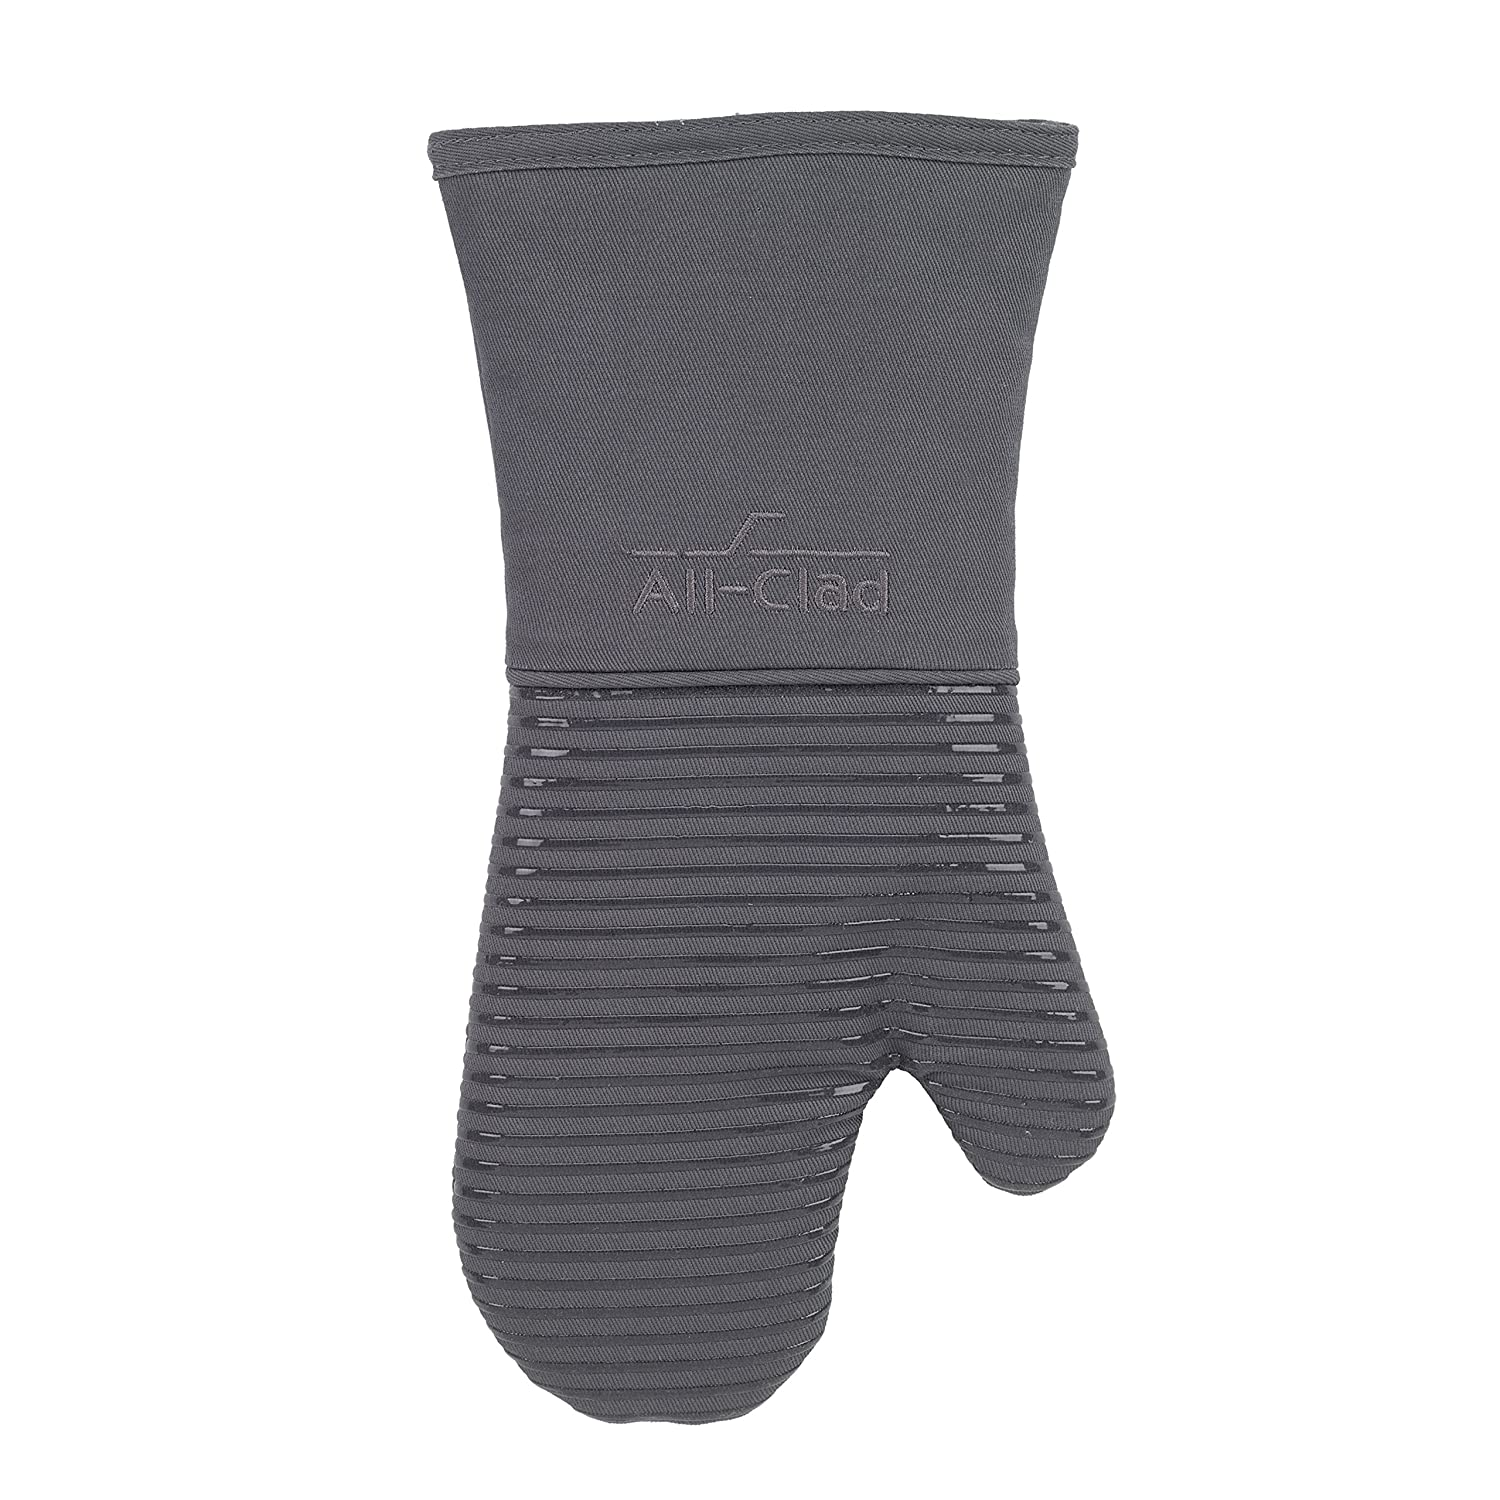 All Clad Textiles Deluxe Heat and Stain Resistant Oven Mitt. Made of Silicone Treated Heavyweight 100-Percent Cotton Twill, Machine Washable, 14 x 6.5 Inches, Pewter Grey